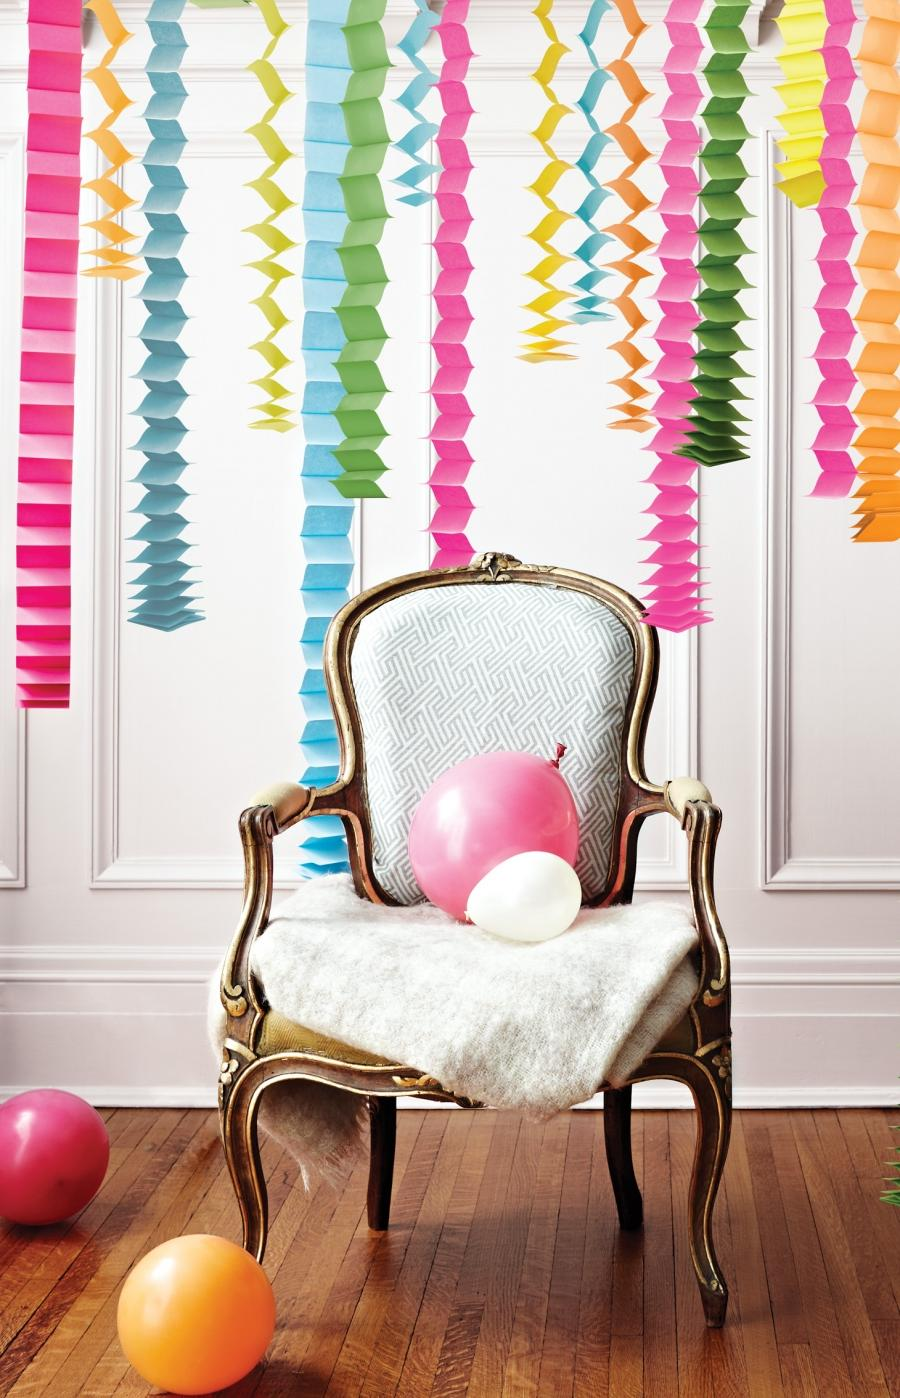 Accordion streamers, party decorations, Jan 13, p146